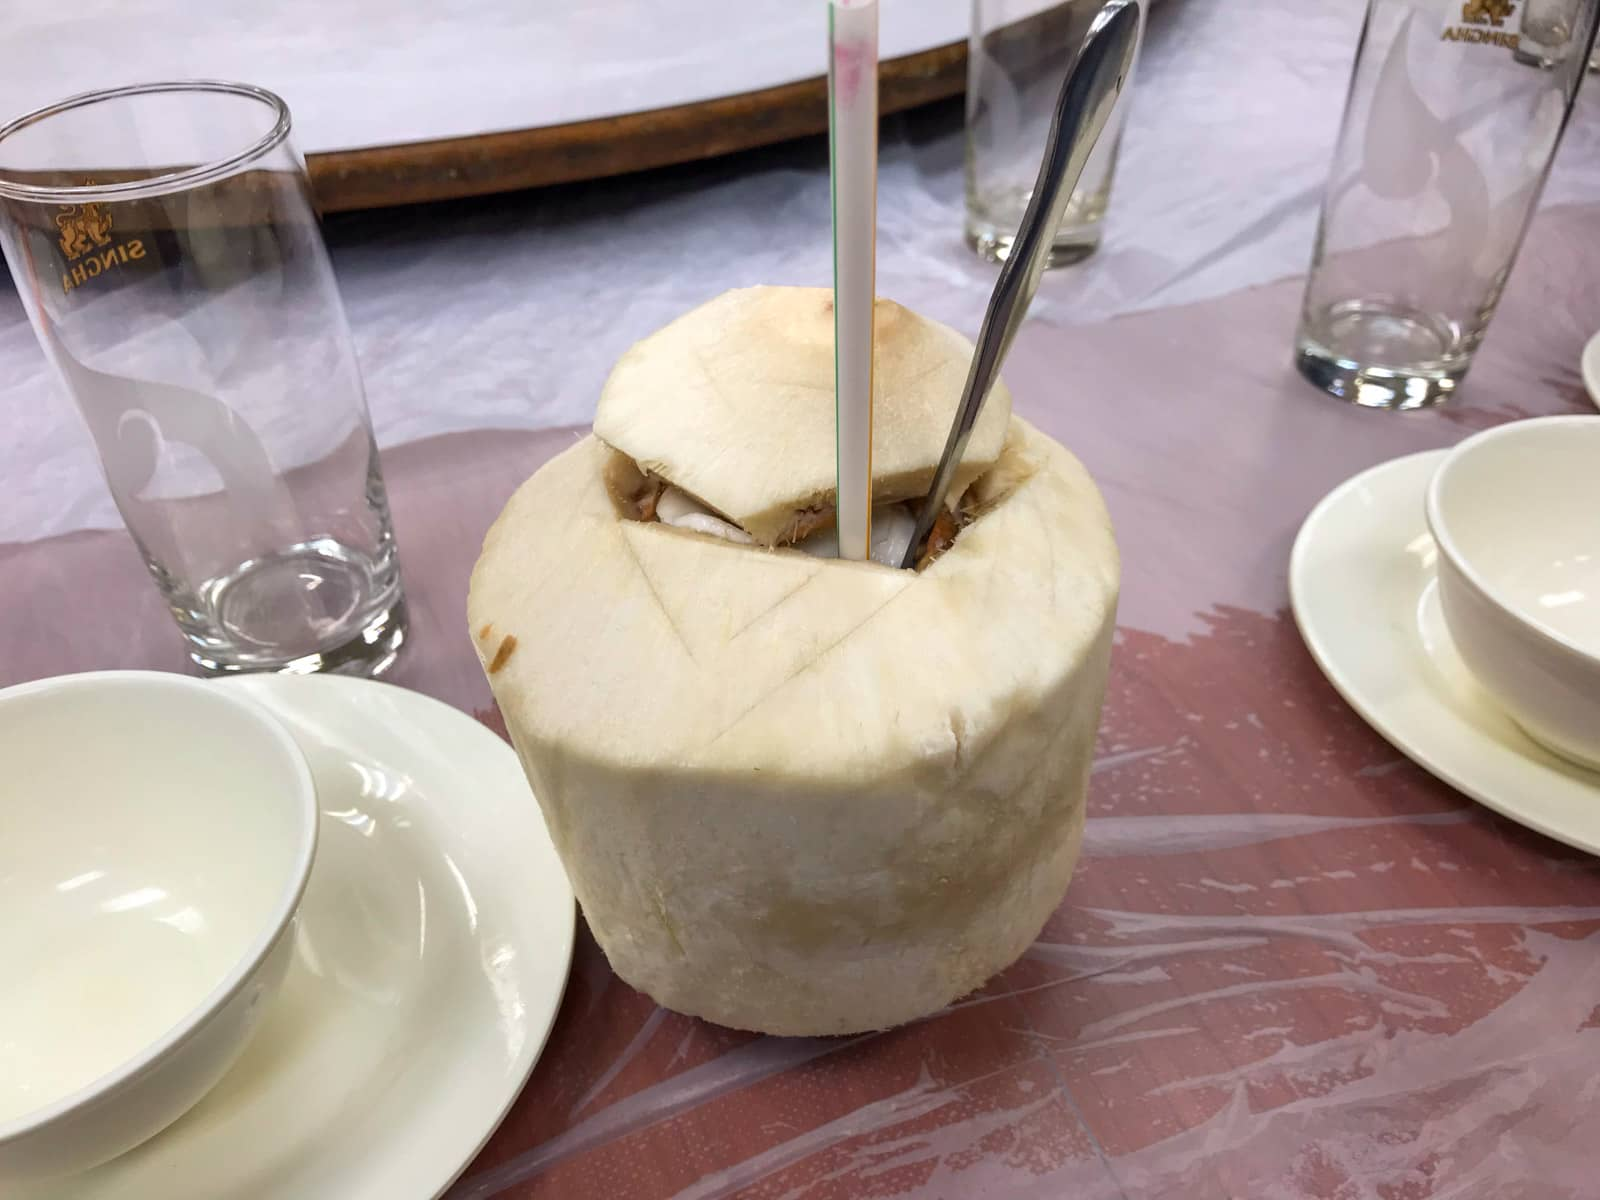 A primitive dining table setting, with a coconut with the top sliced open. It has a straw and spoon sticking out of the top if it.